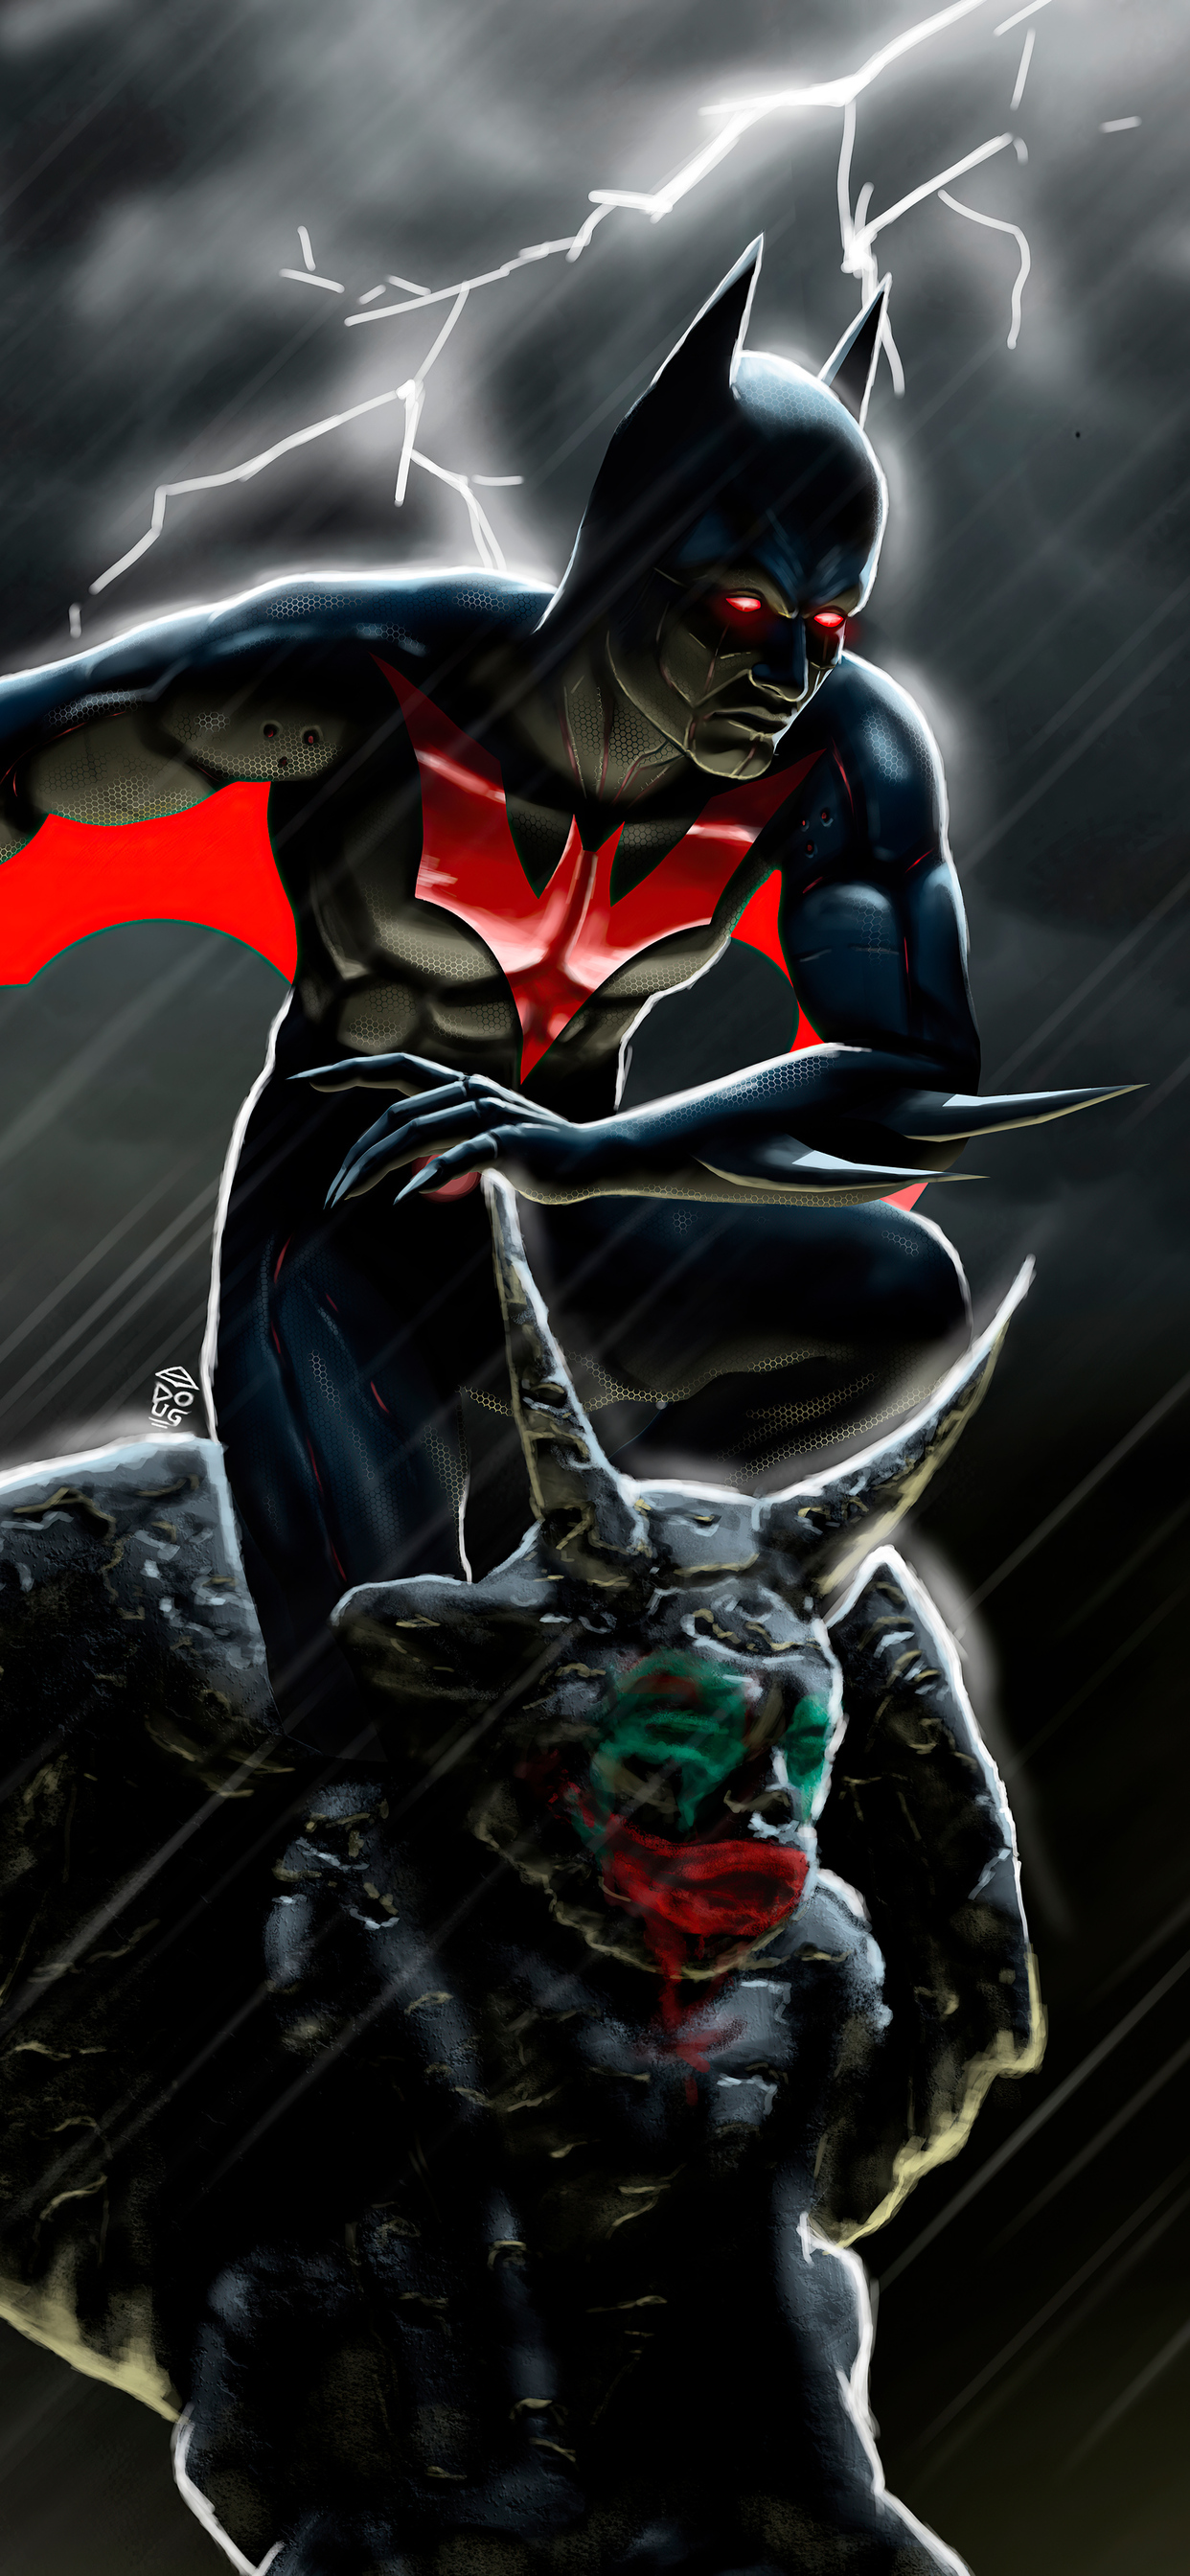 2020-batman-beyond-4k-mv.jpg